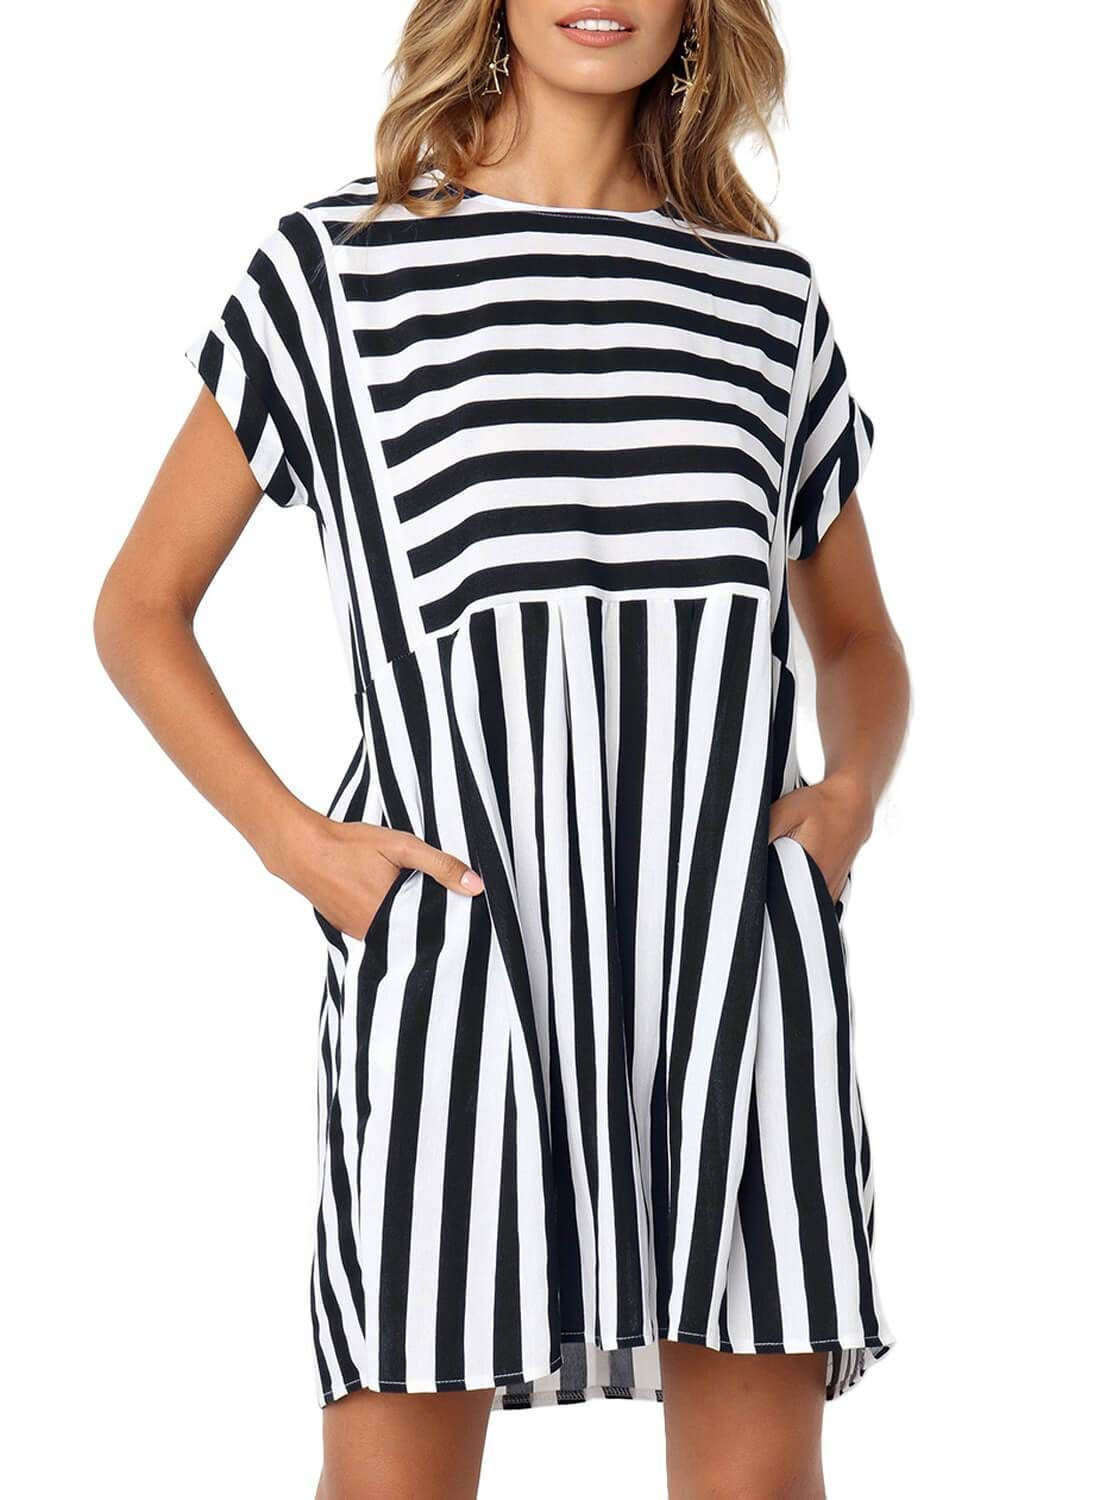 Sheinstreet Spring And Summer Striped Pocketed Casual Dress Striped Mini Dress Casual Dress Striped Casual Dresses [ 1500 x 1100 Pixel ]